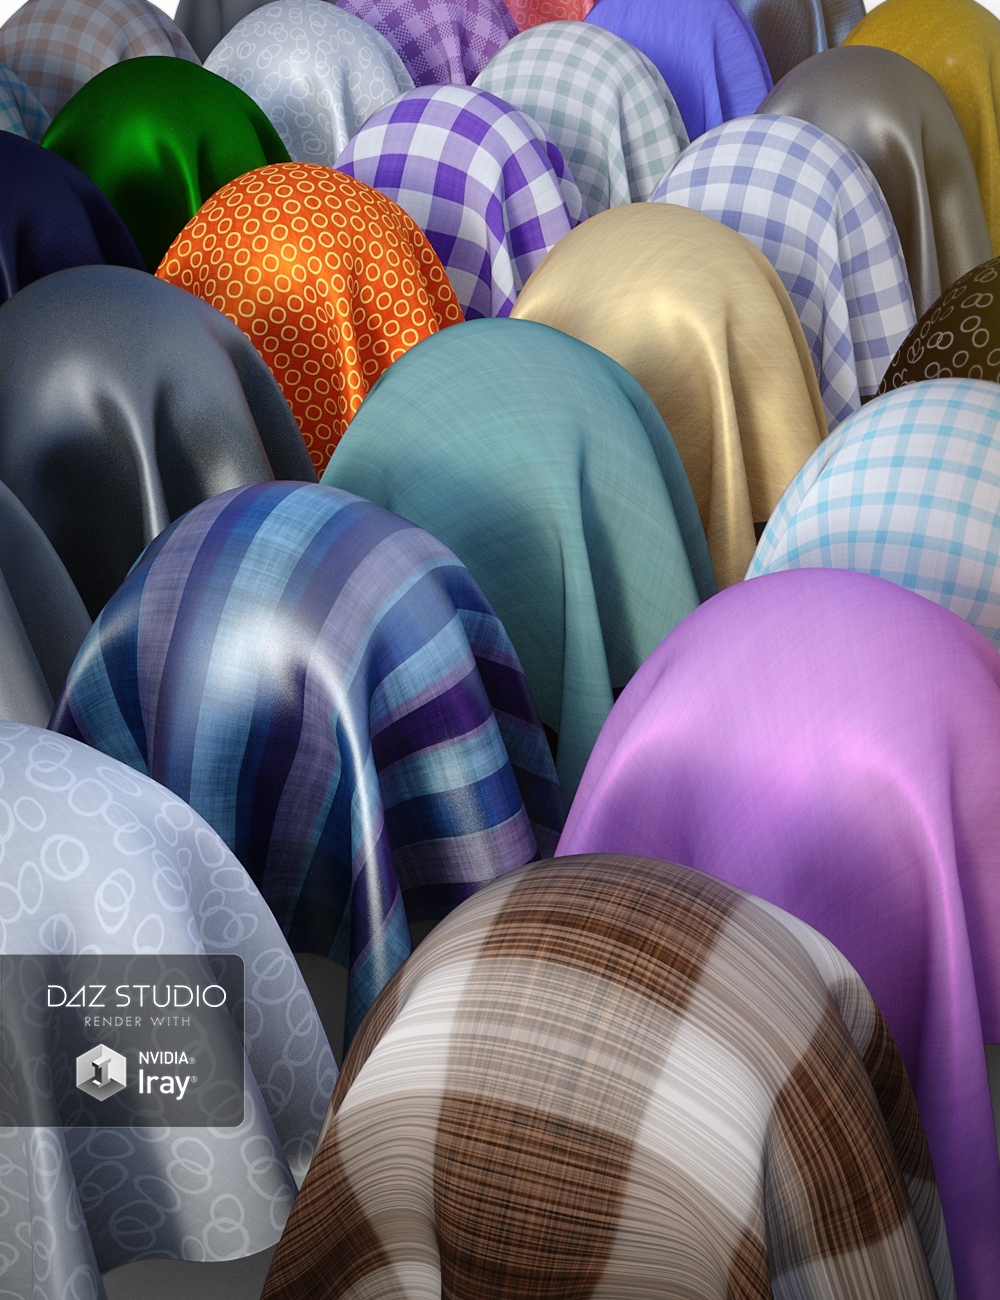 More Simple Fabric Iray Shaders by: JGreenlees, 3D Models by Daz 3D